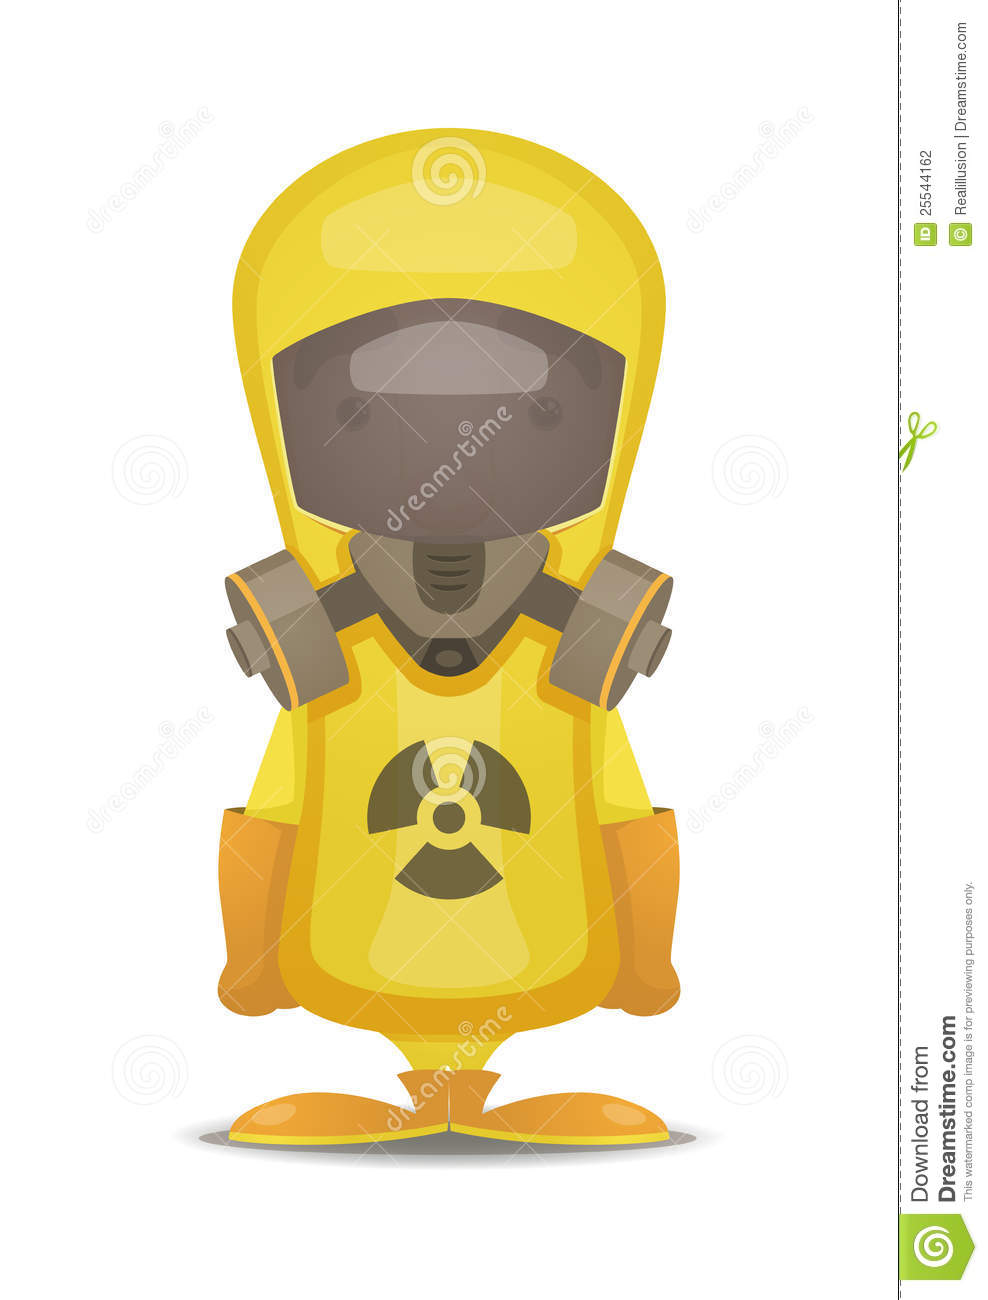 Toxic clipart radiation Free Images radiation%20clipart Clipart Panda